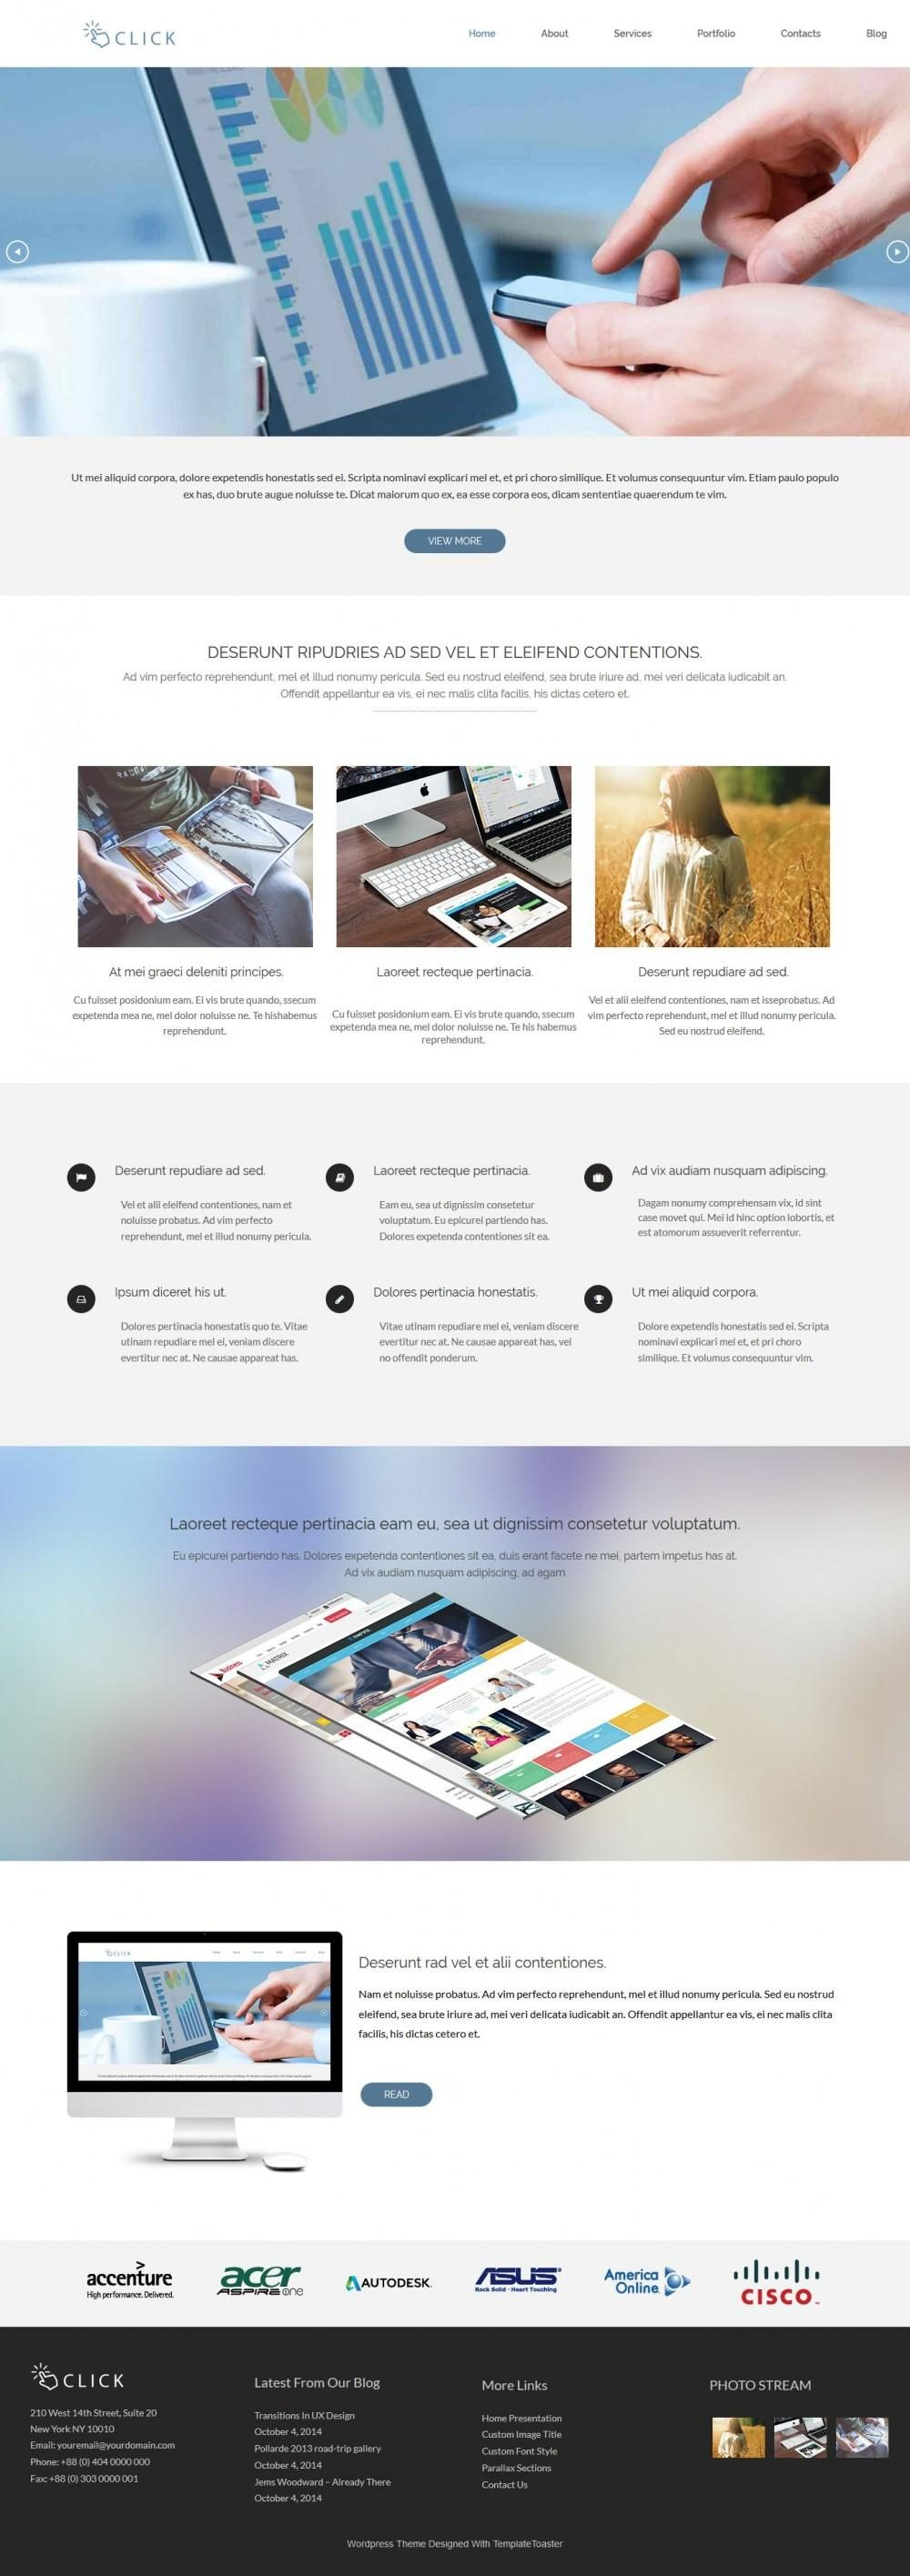 Click - WordPress Theme for Web Agencies/Studio